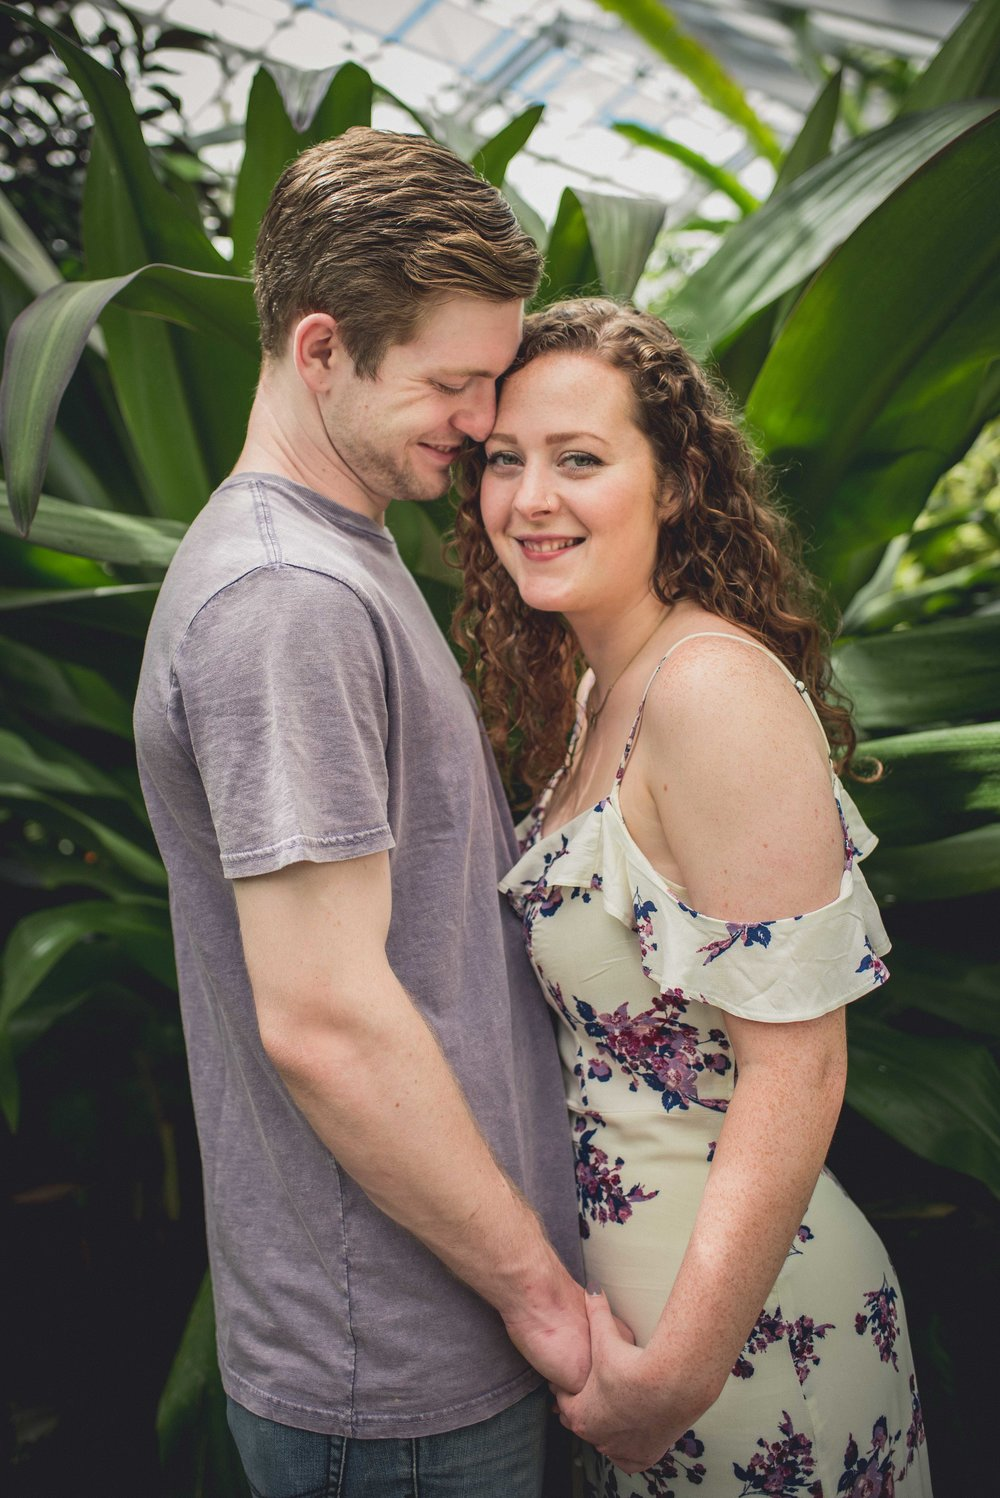 Rawling Conservatory & botanical gardens in Baltimore Bride and groom engagement session